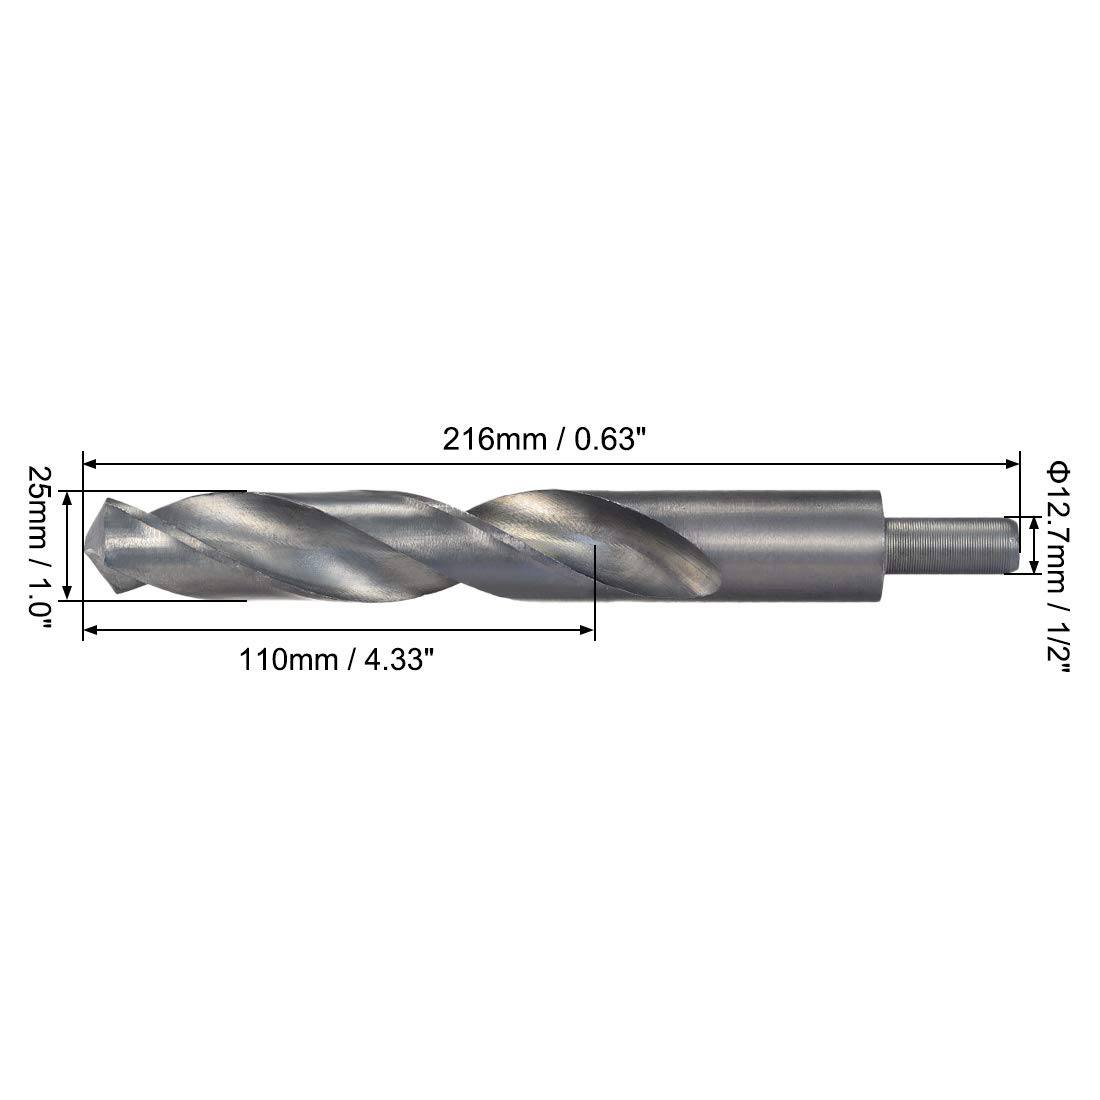 sourcing map Reduced Shank Twist Drill Bits 20mm High Speed Steel 4241 with 10mm Shank 1 Pcs